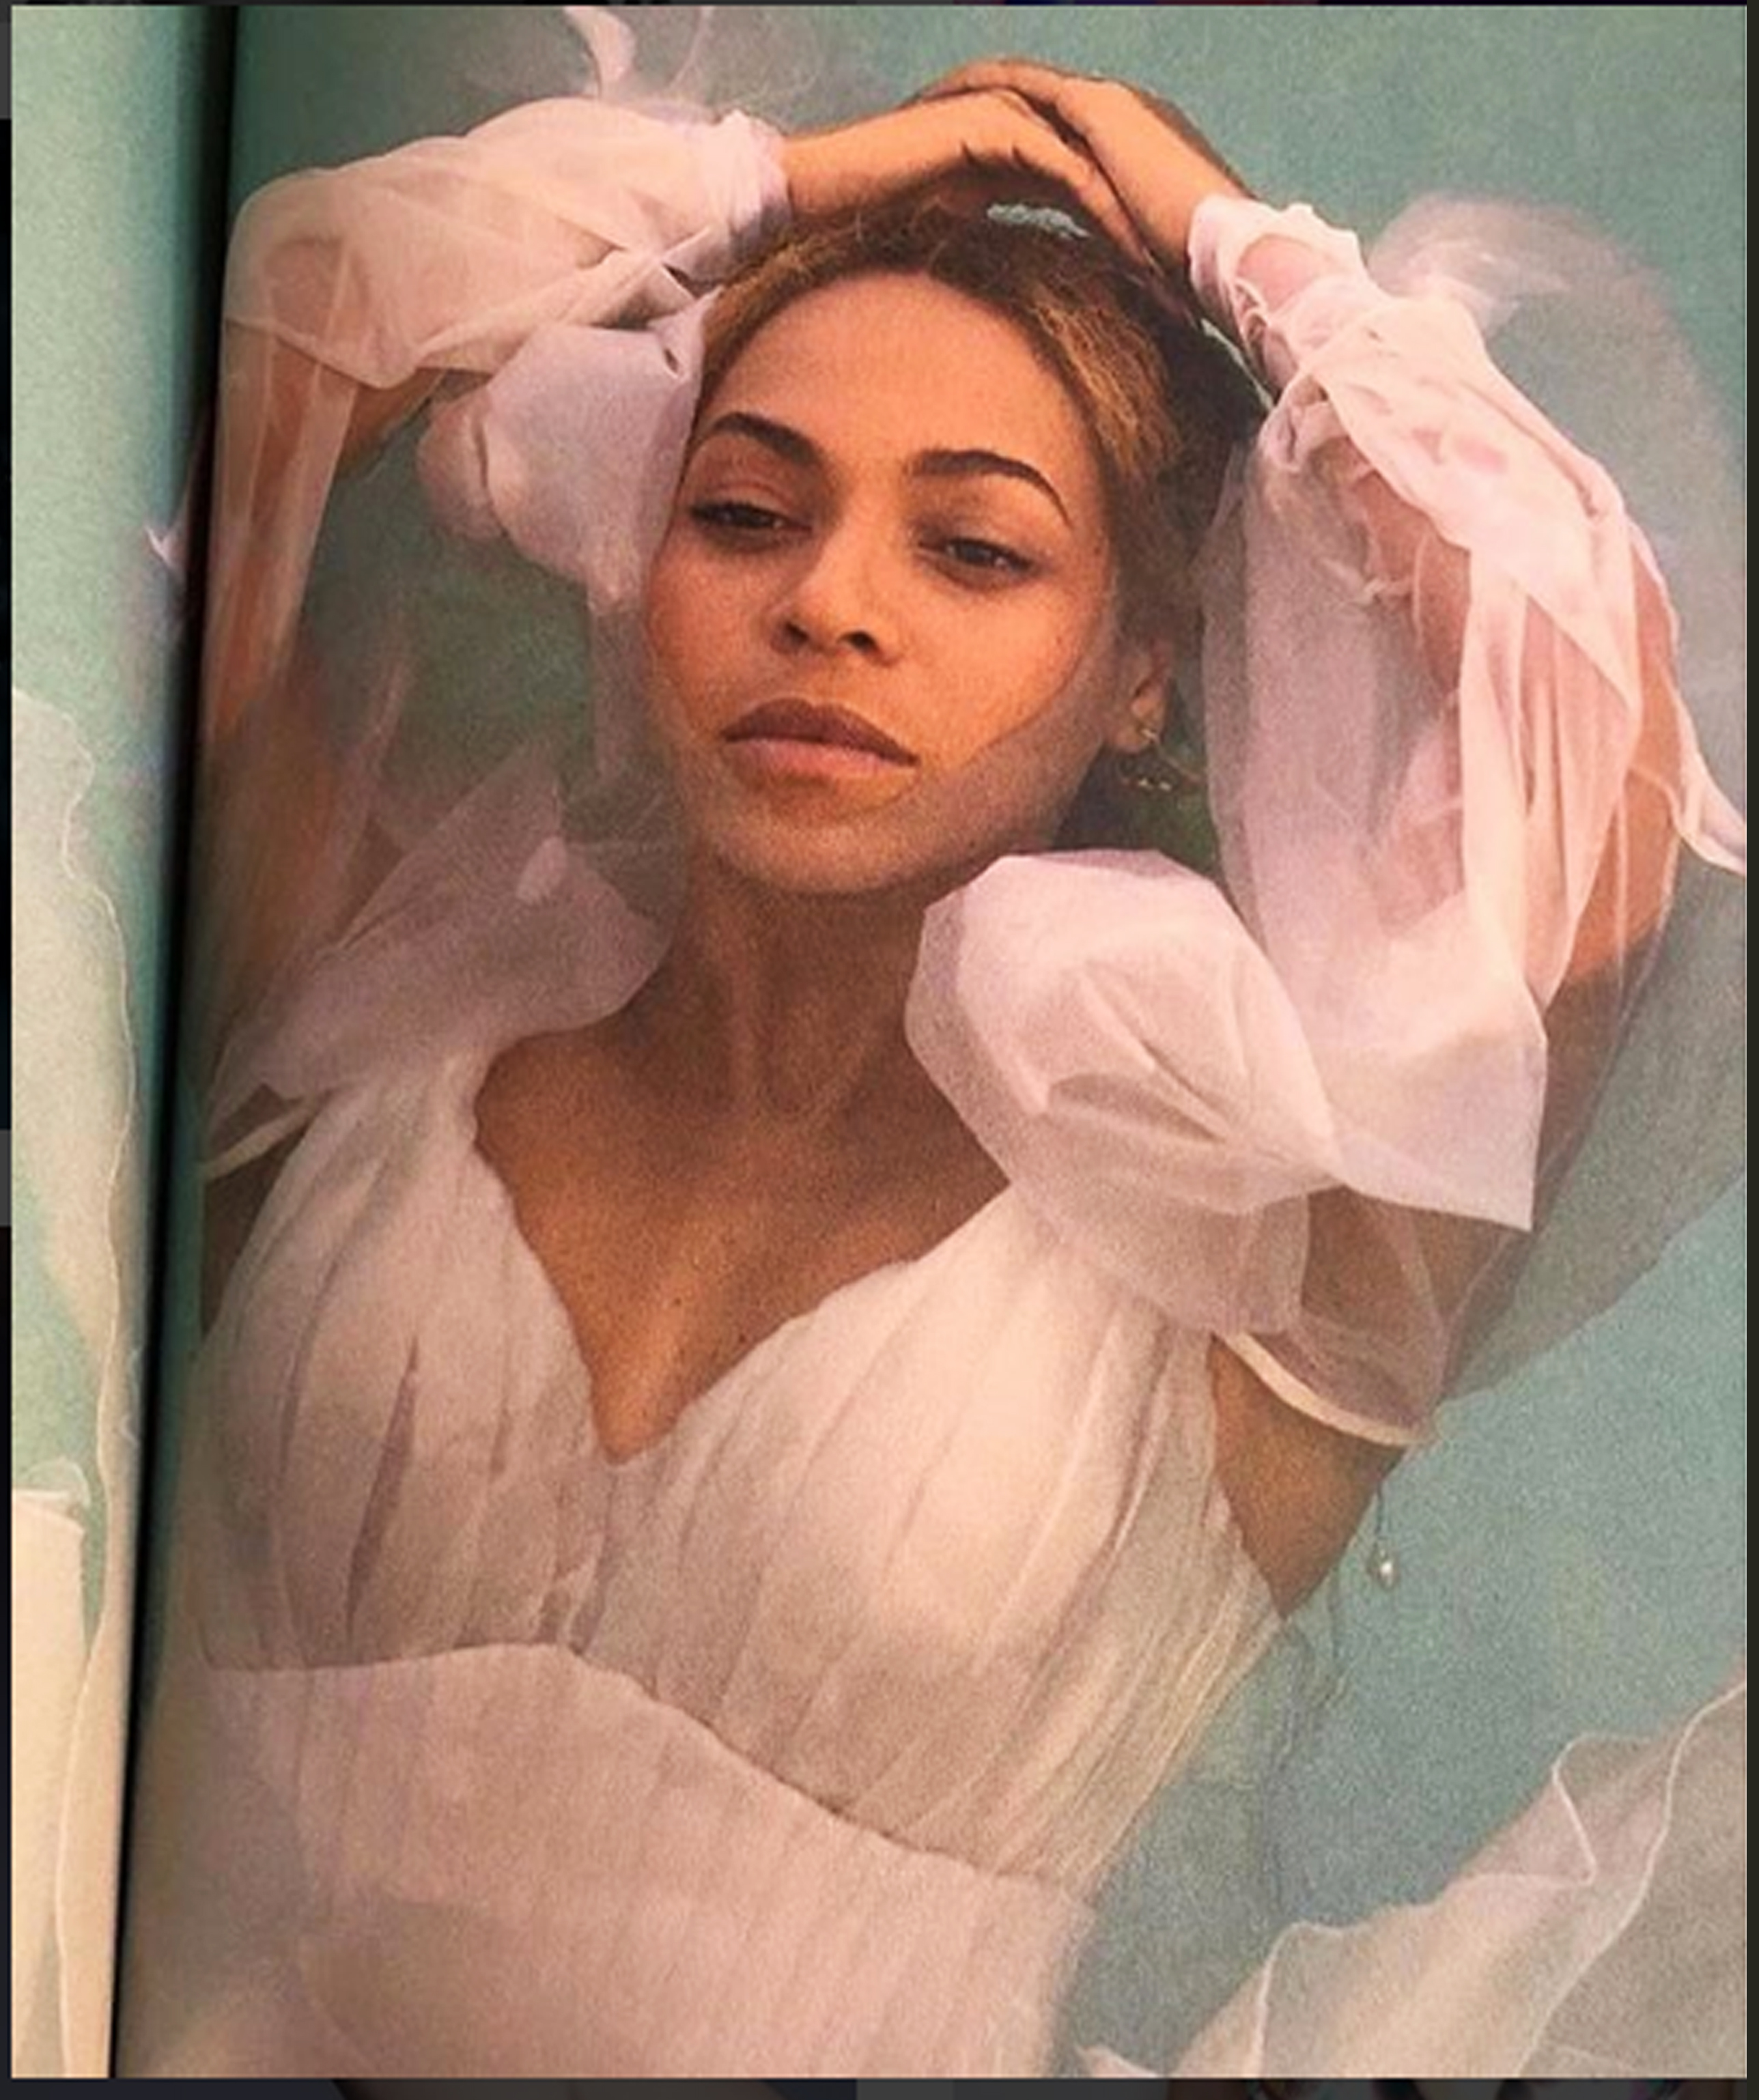 beyonce wearing white custom made couture dress by on aura tout vu for OTRII